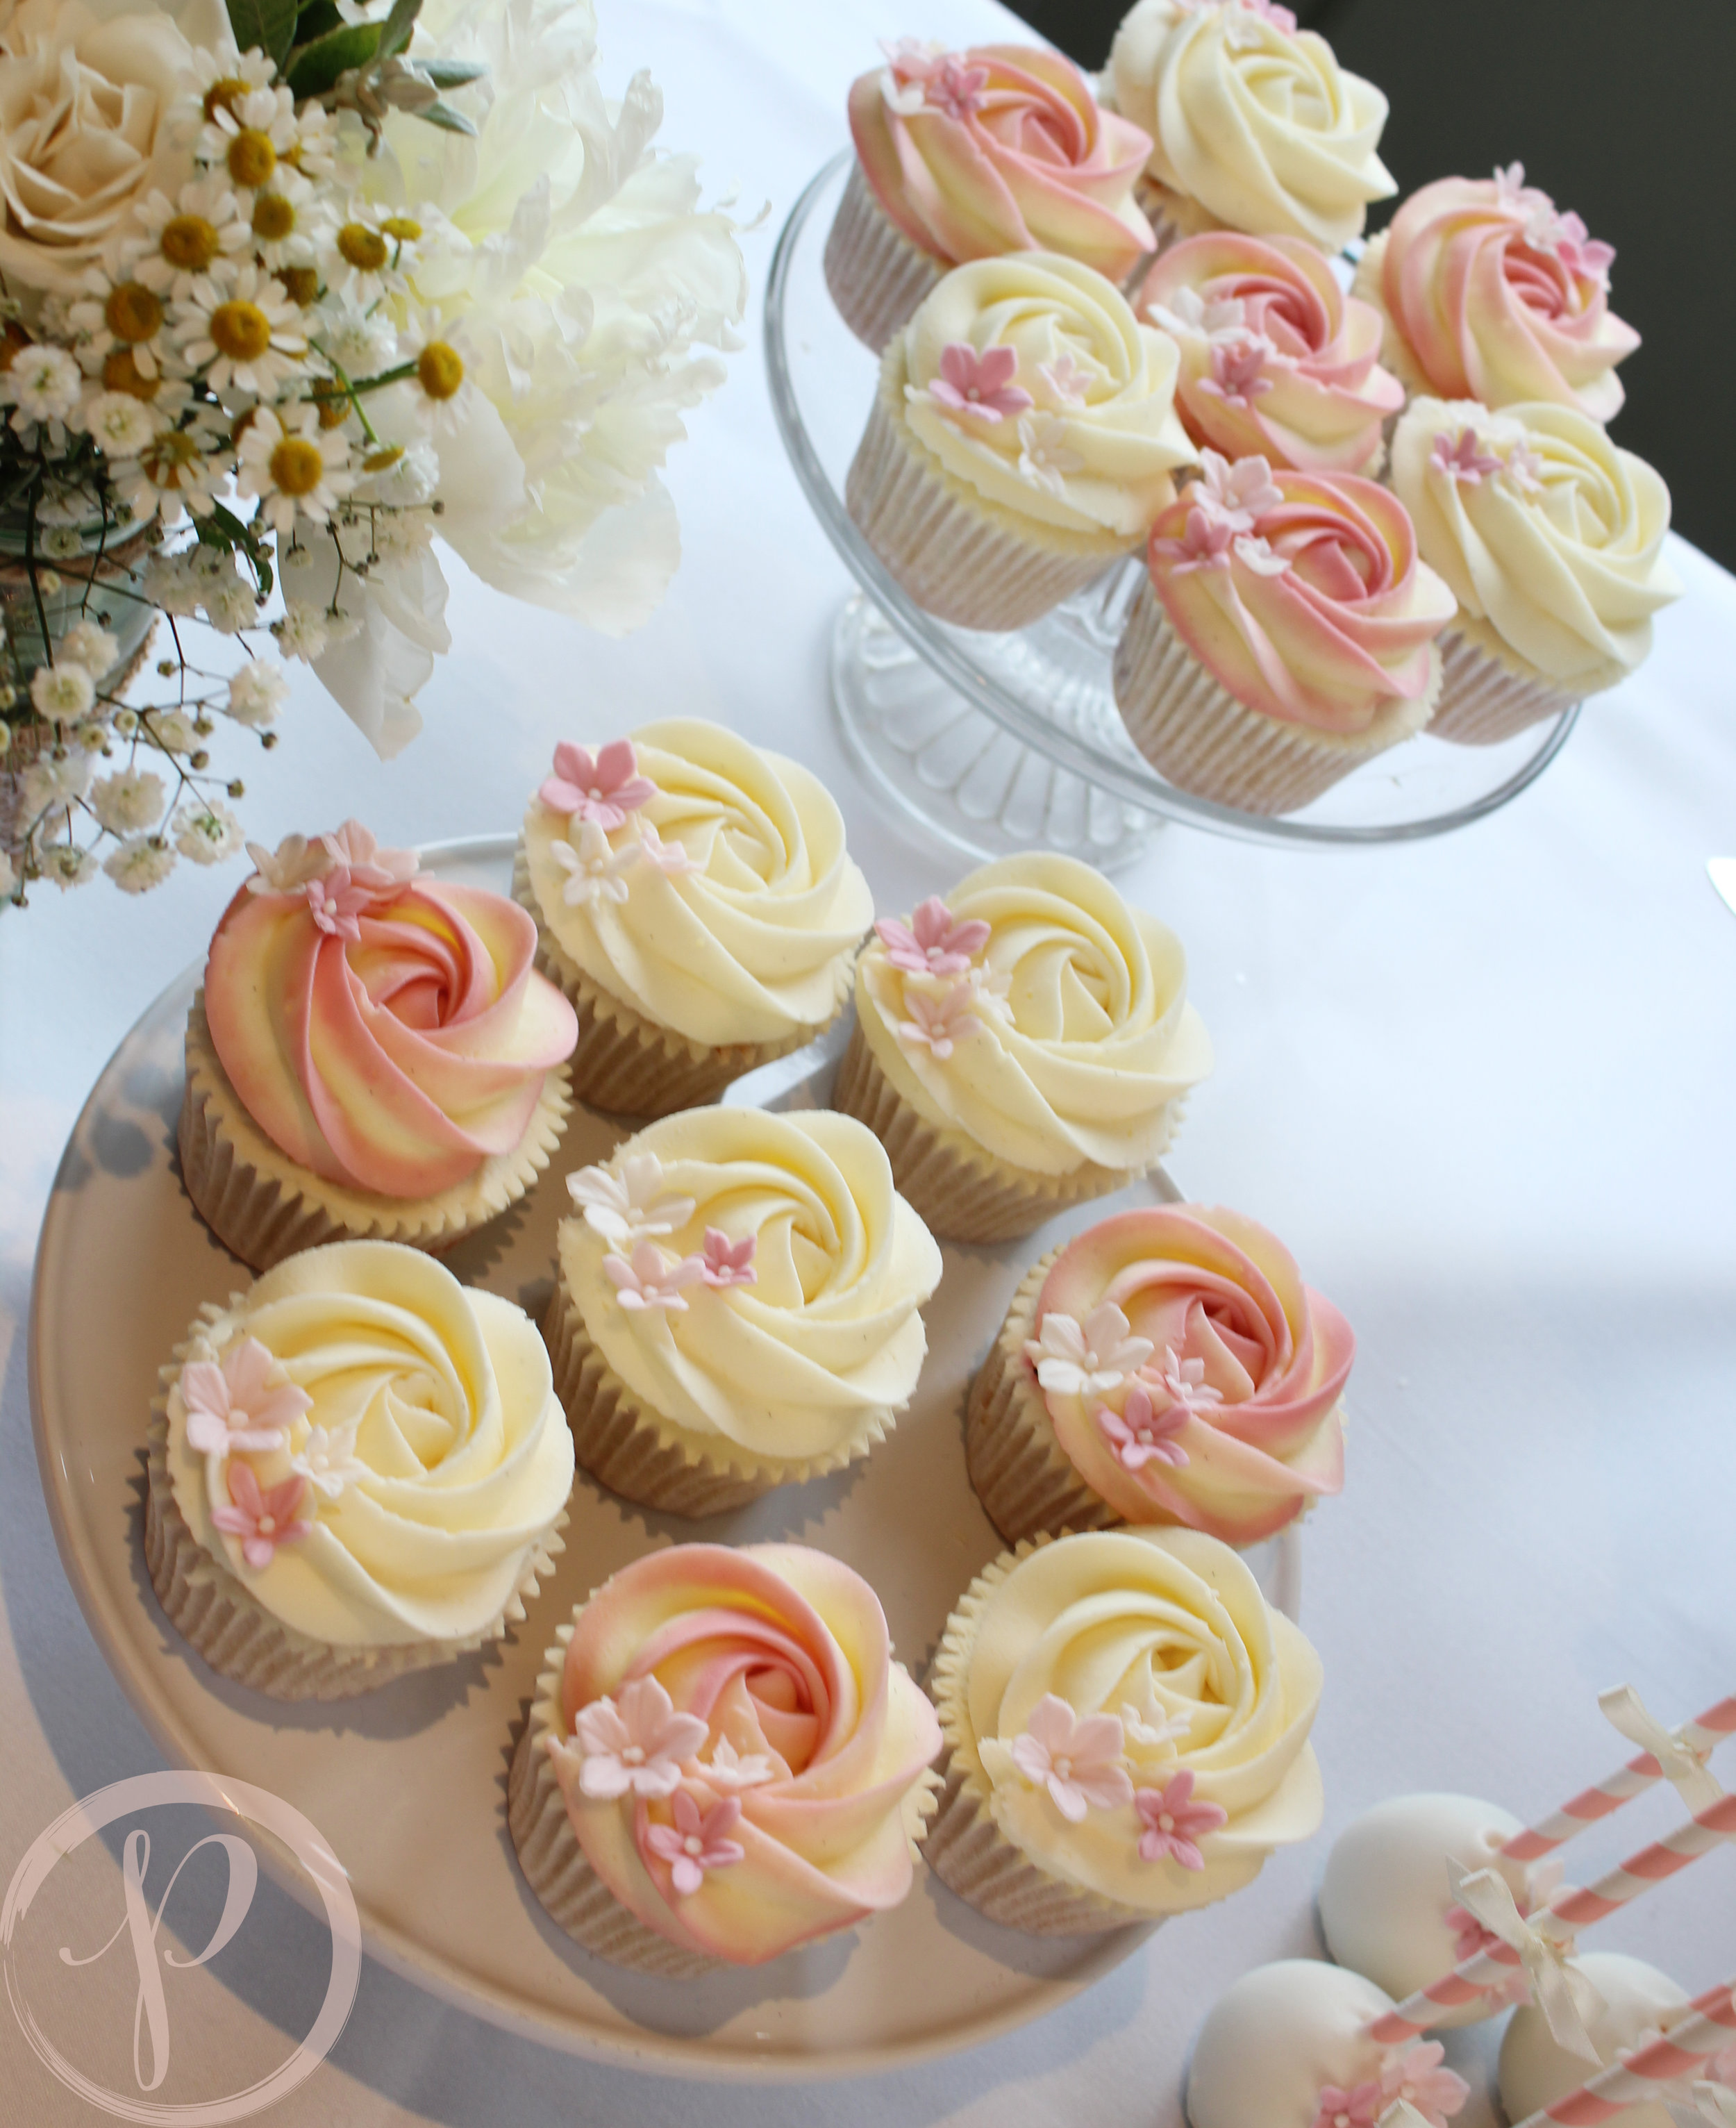 blush rose wedding cupcakes.jpg